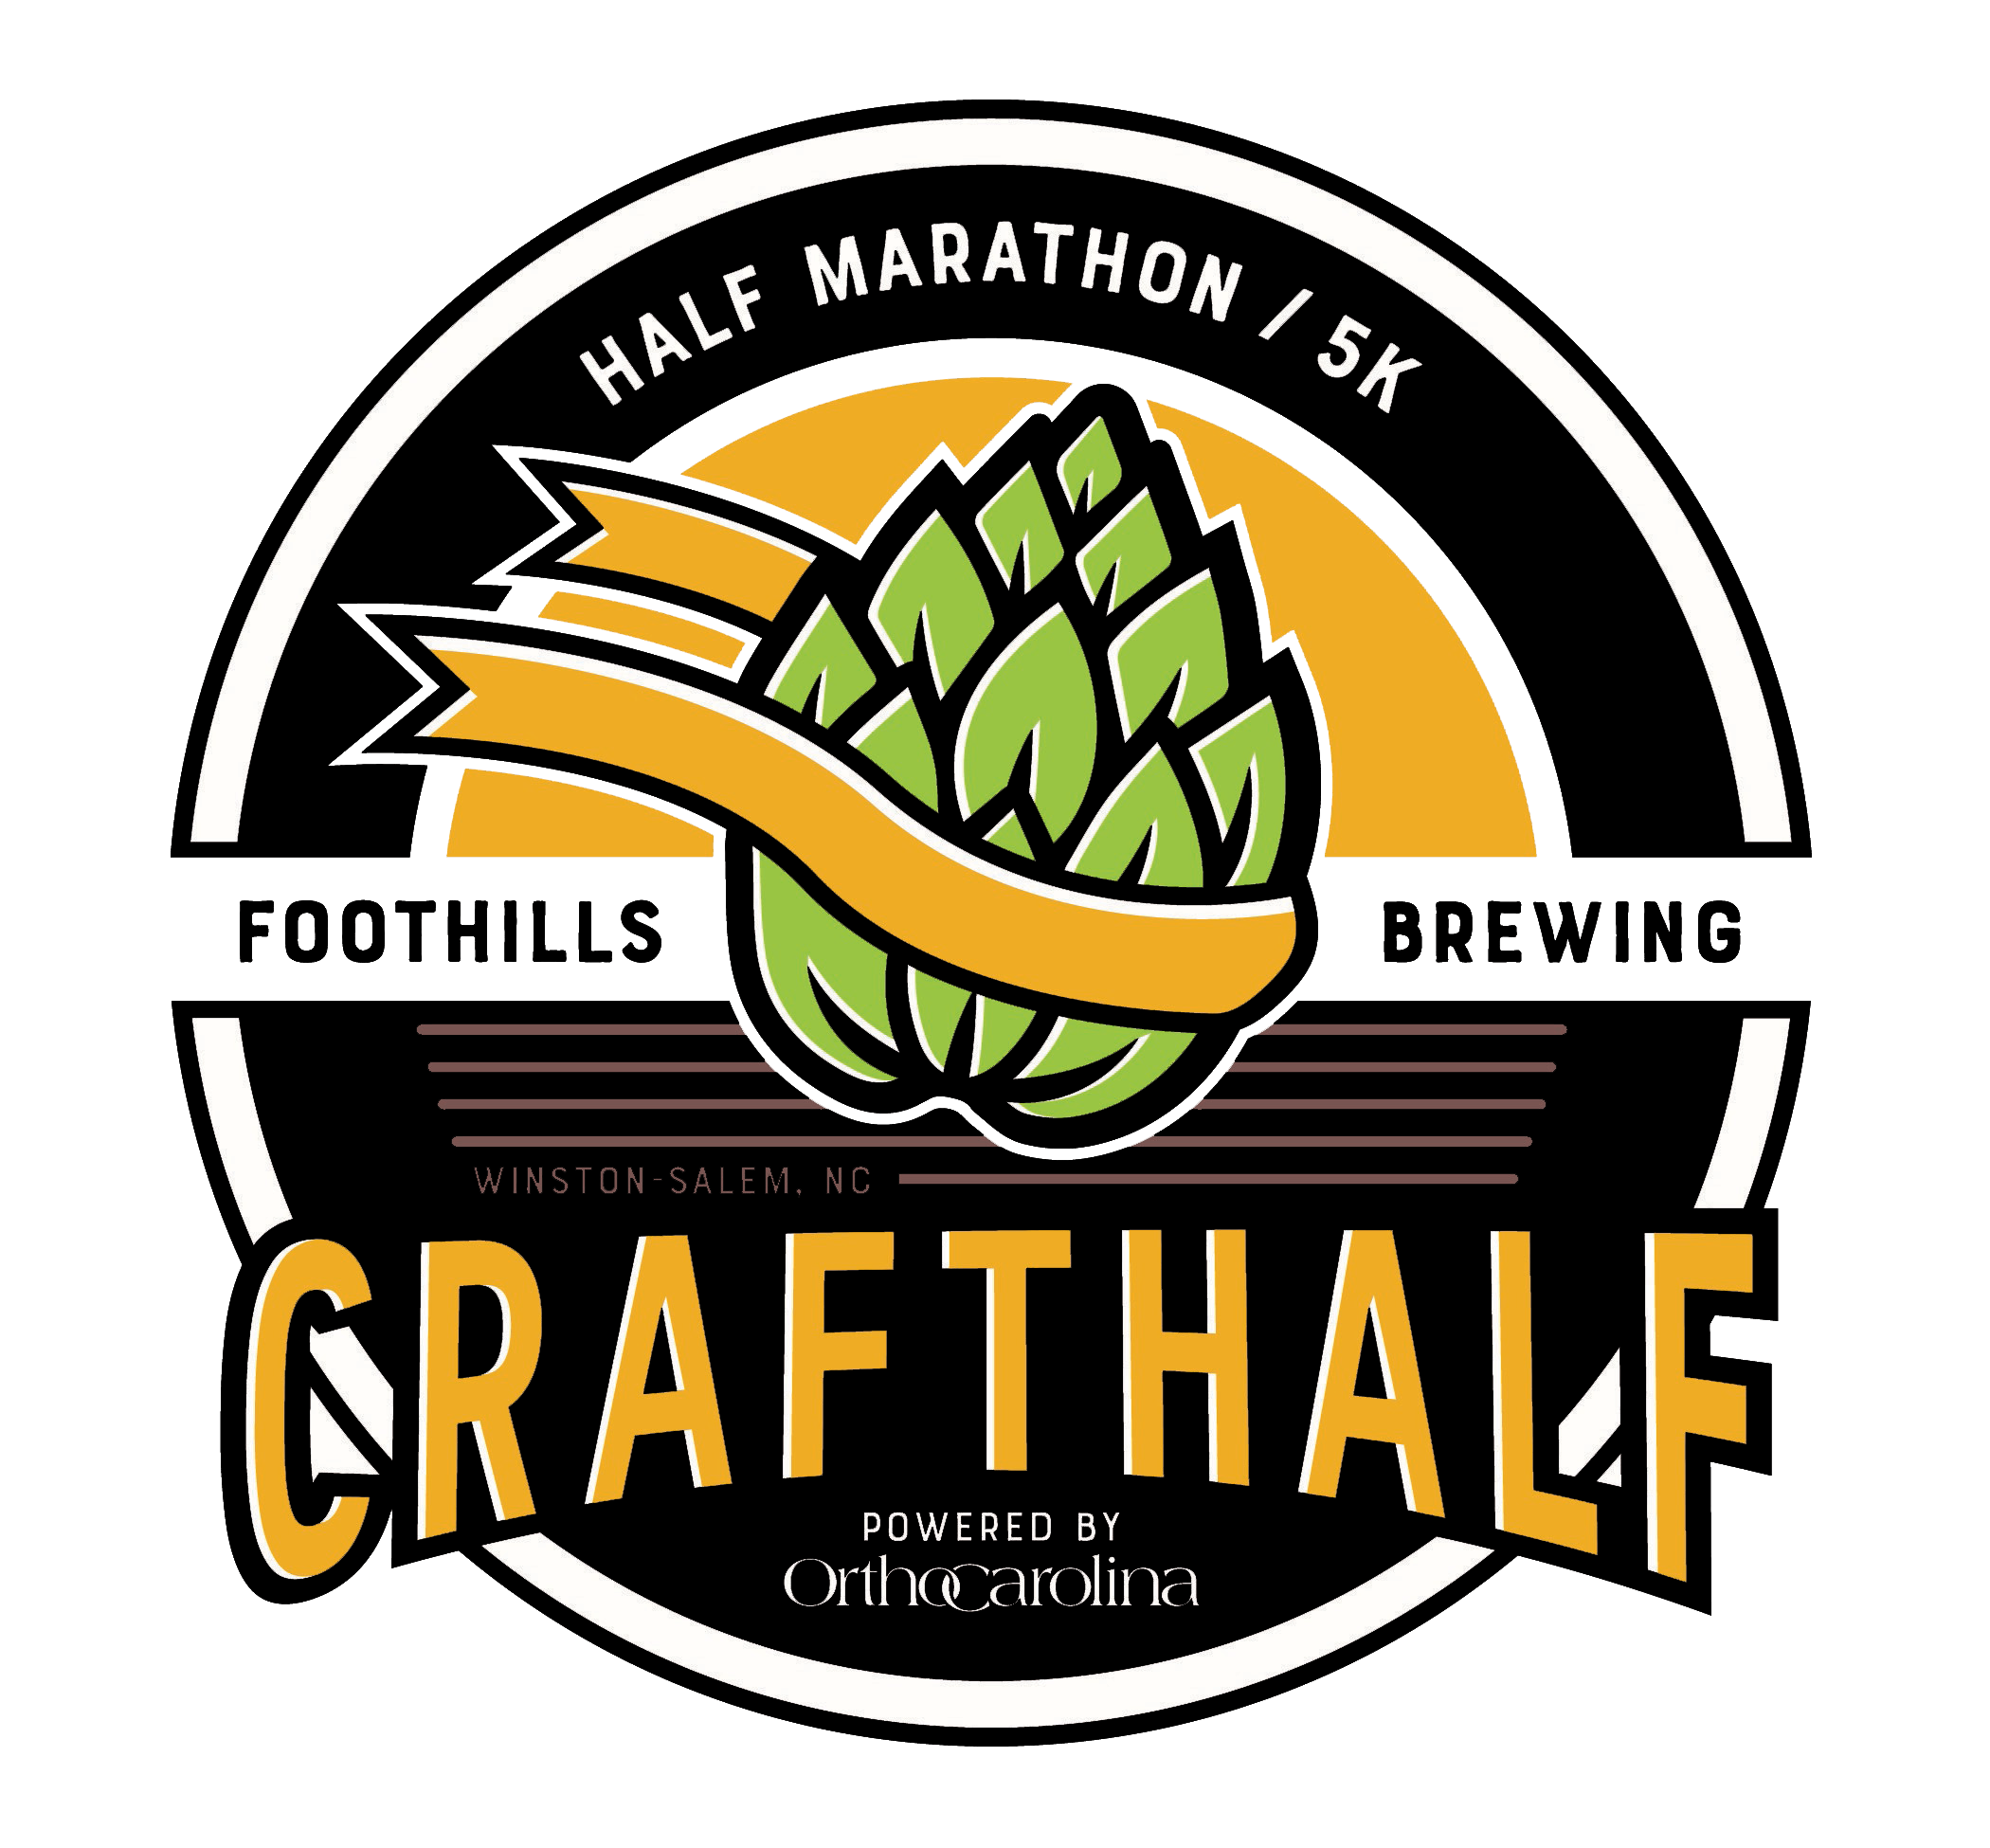 Craft-Half-logo-FINAL-3.png